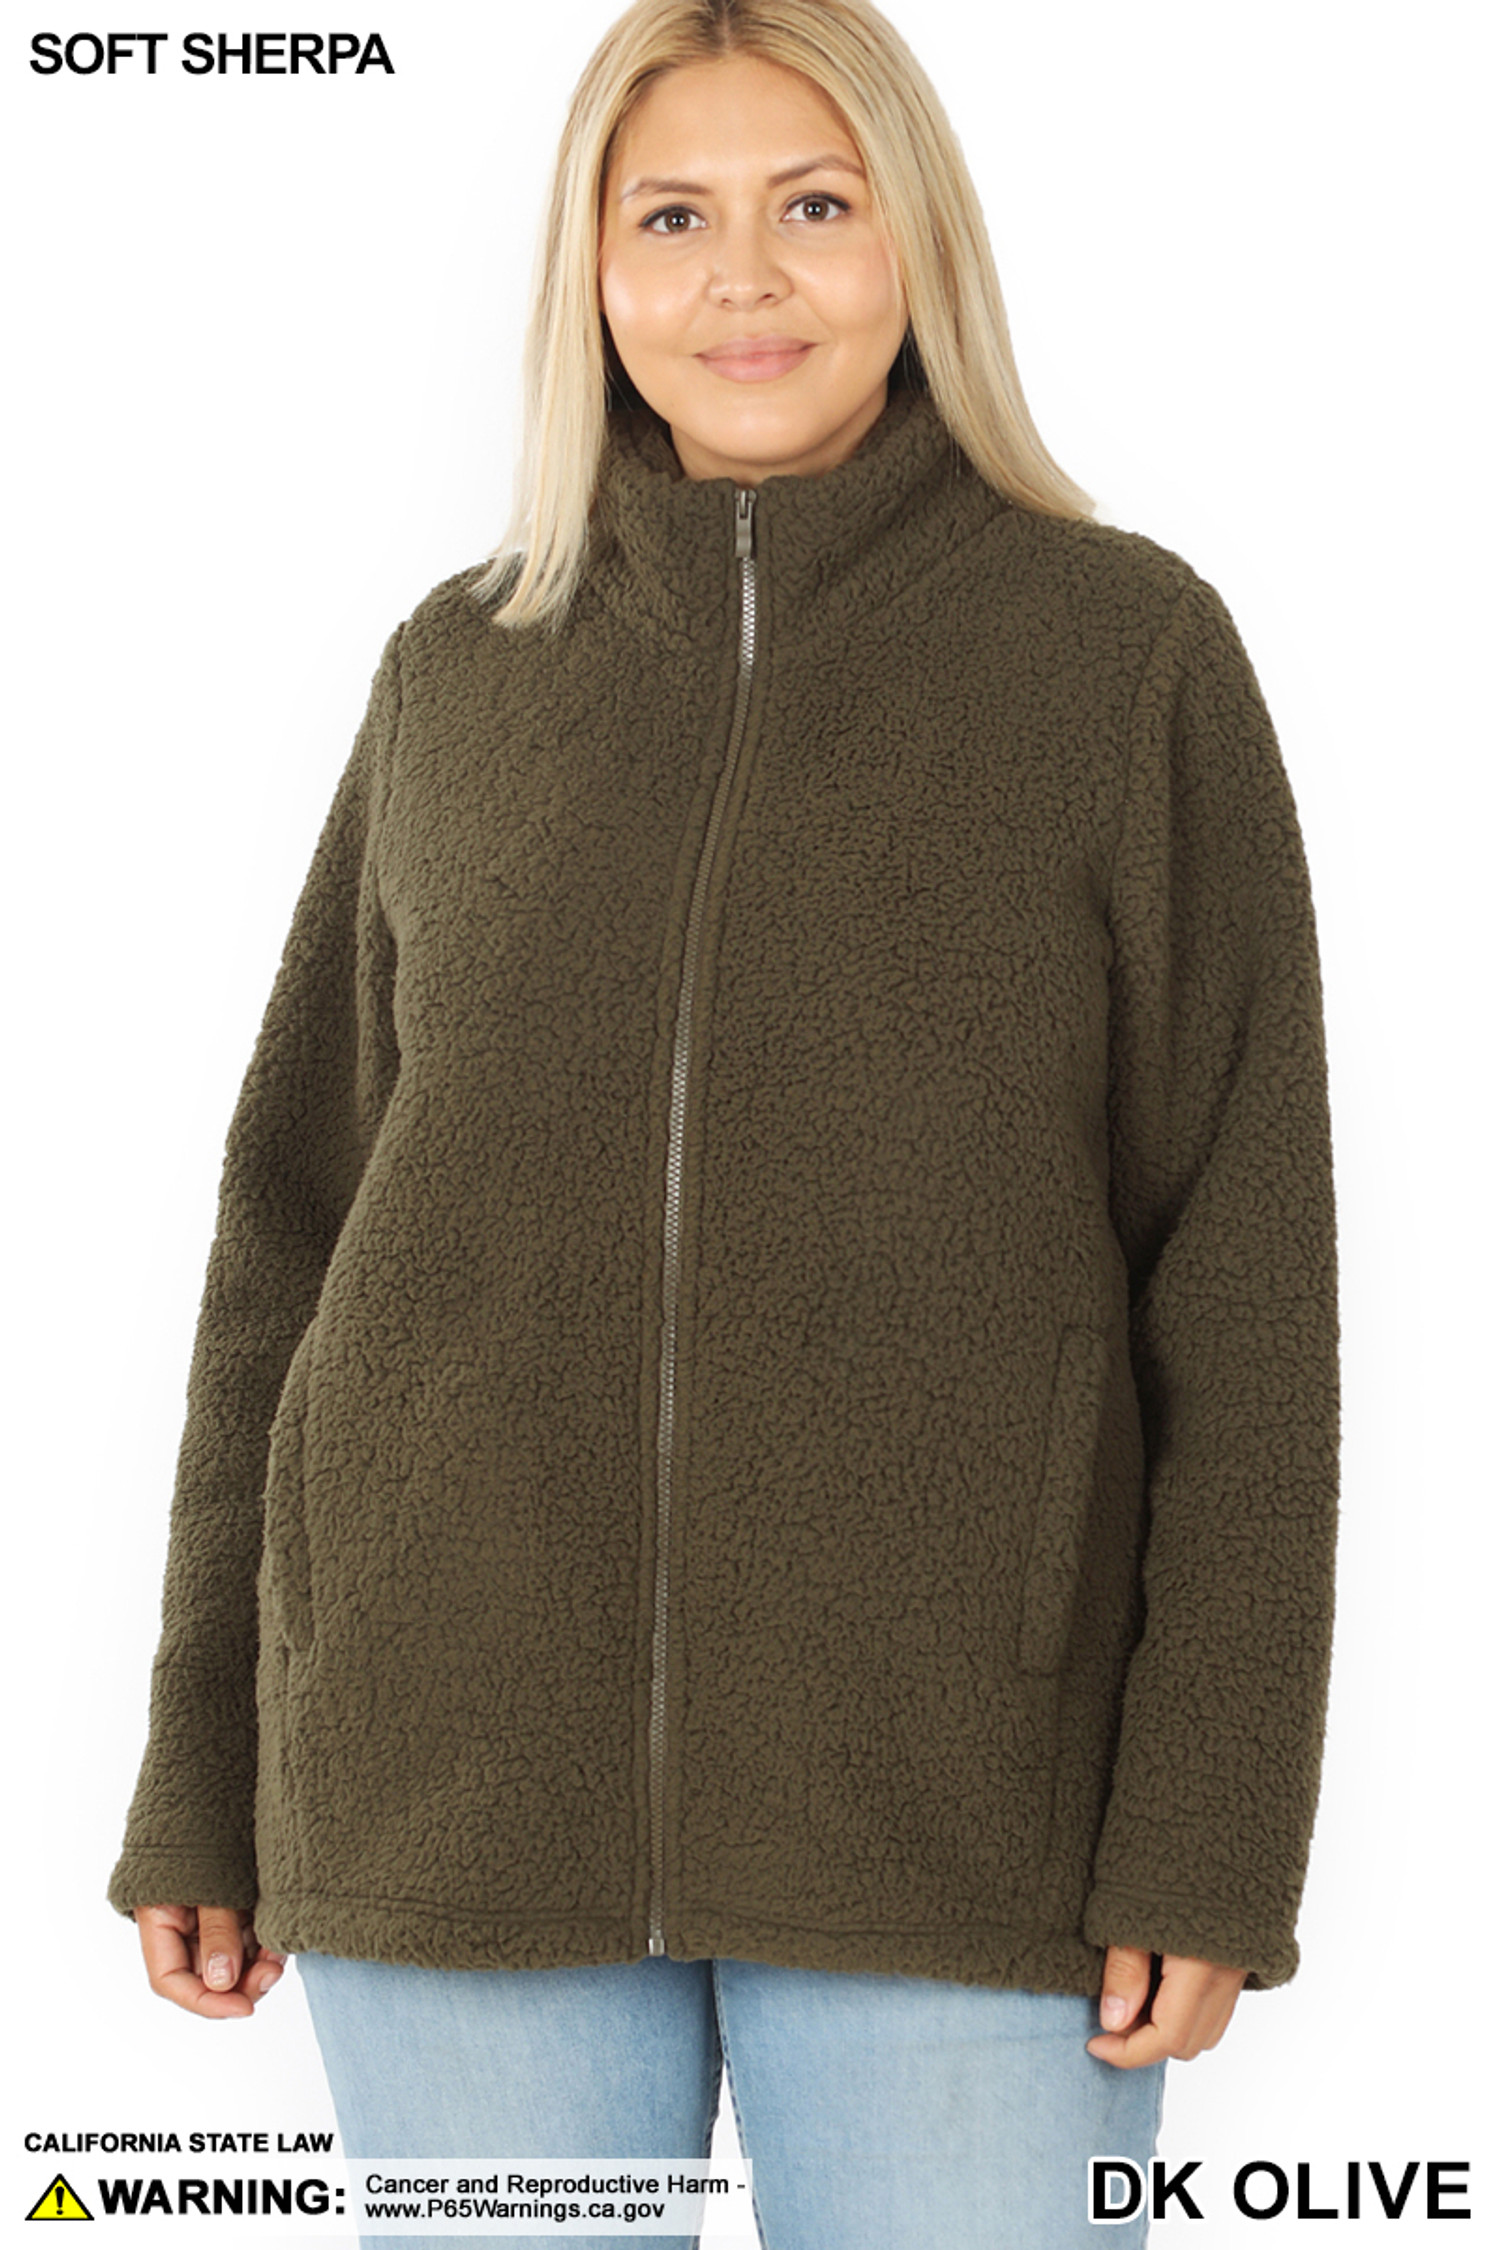 Front image of Dark Olive Sherpa Zip Up Plus Size Jacket with Side Pockets